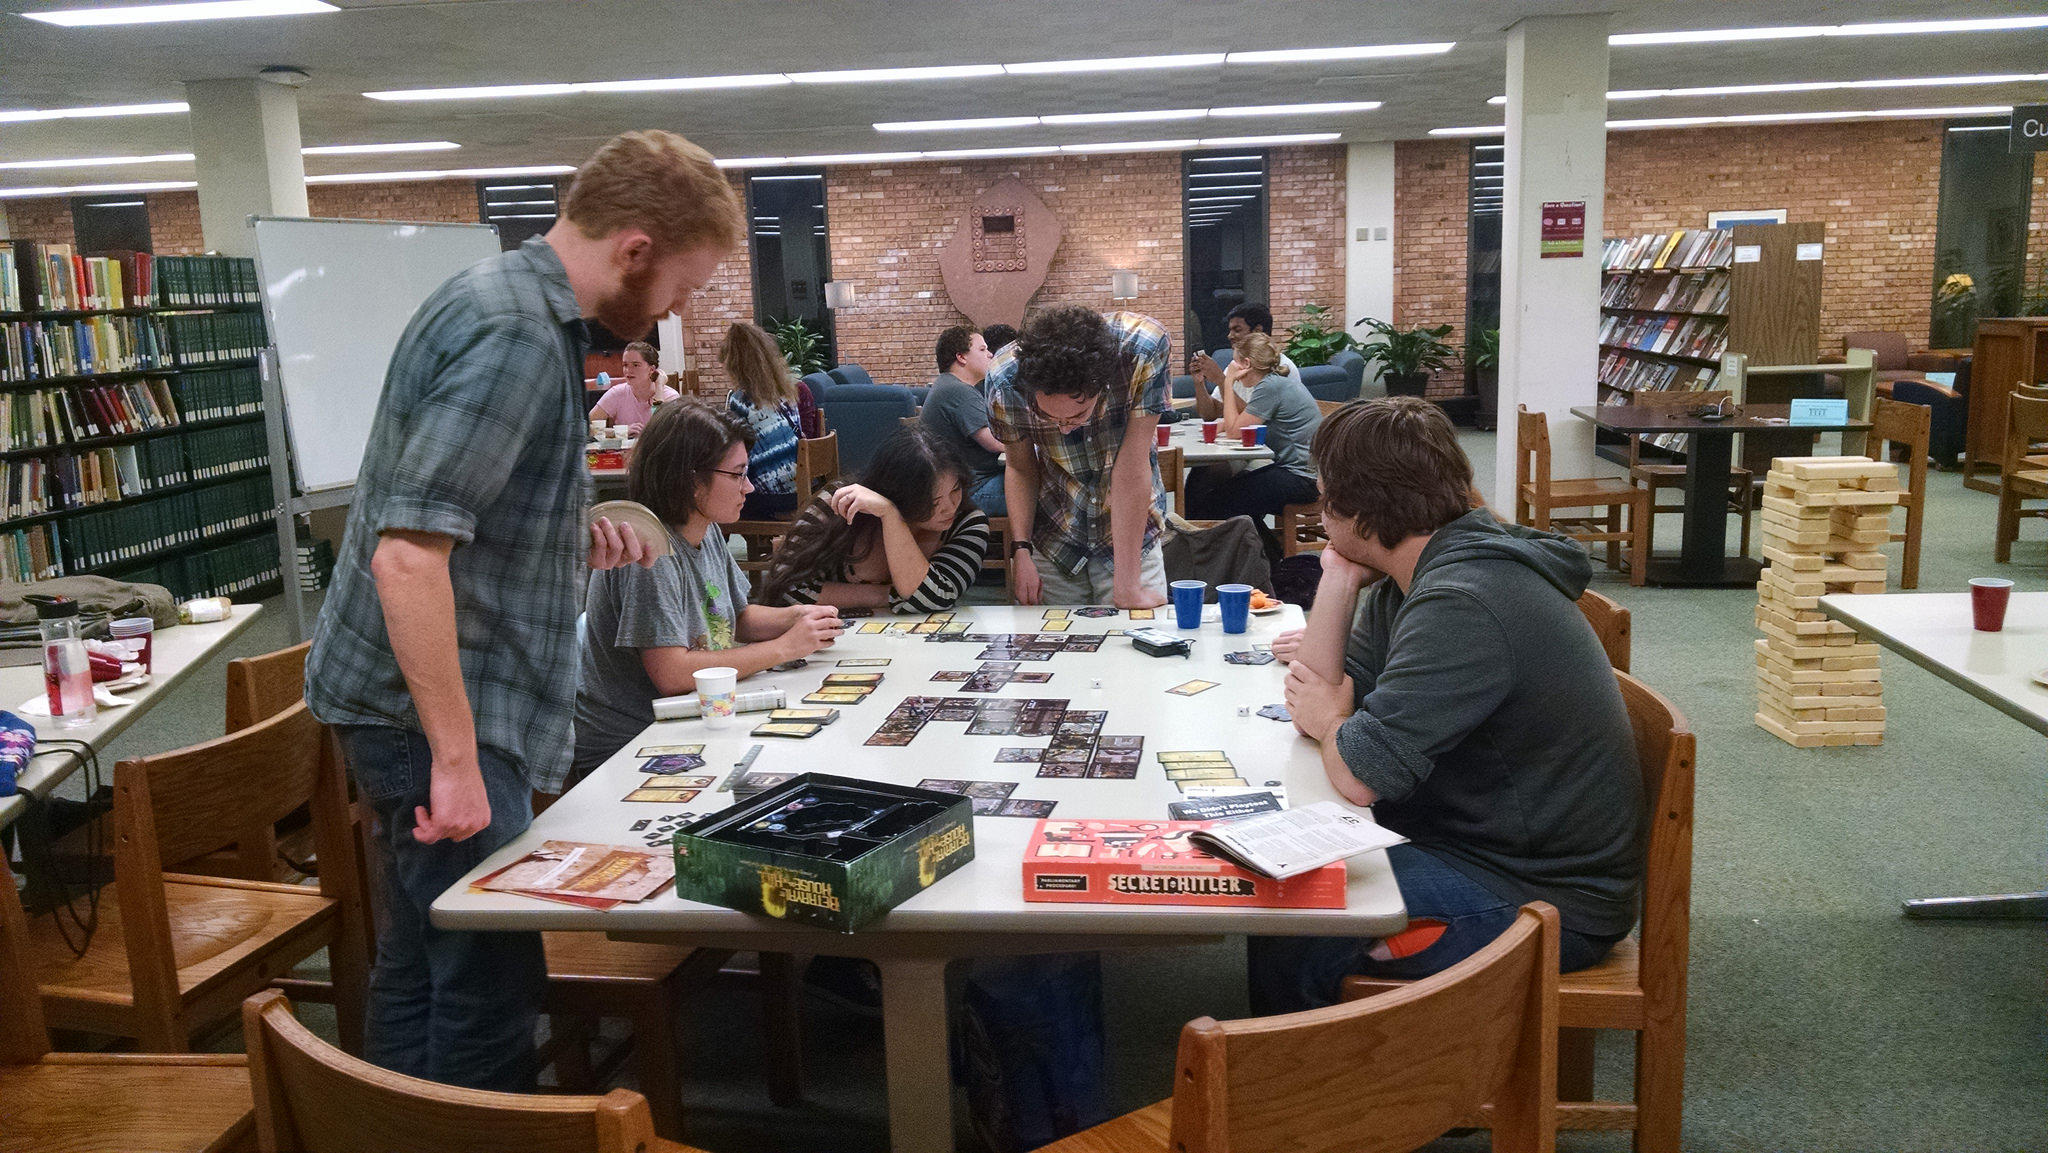 Students browsing a table full of games.